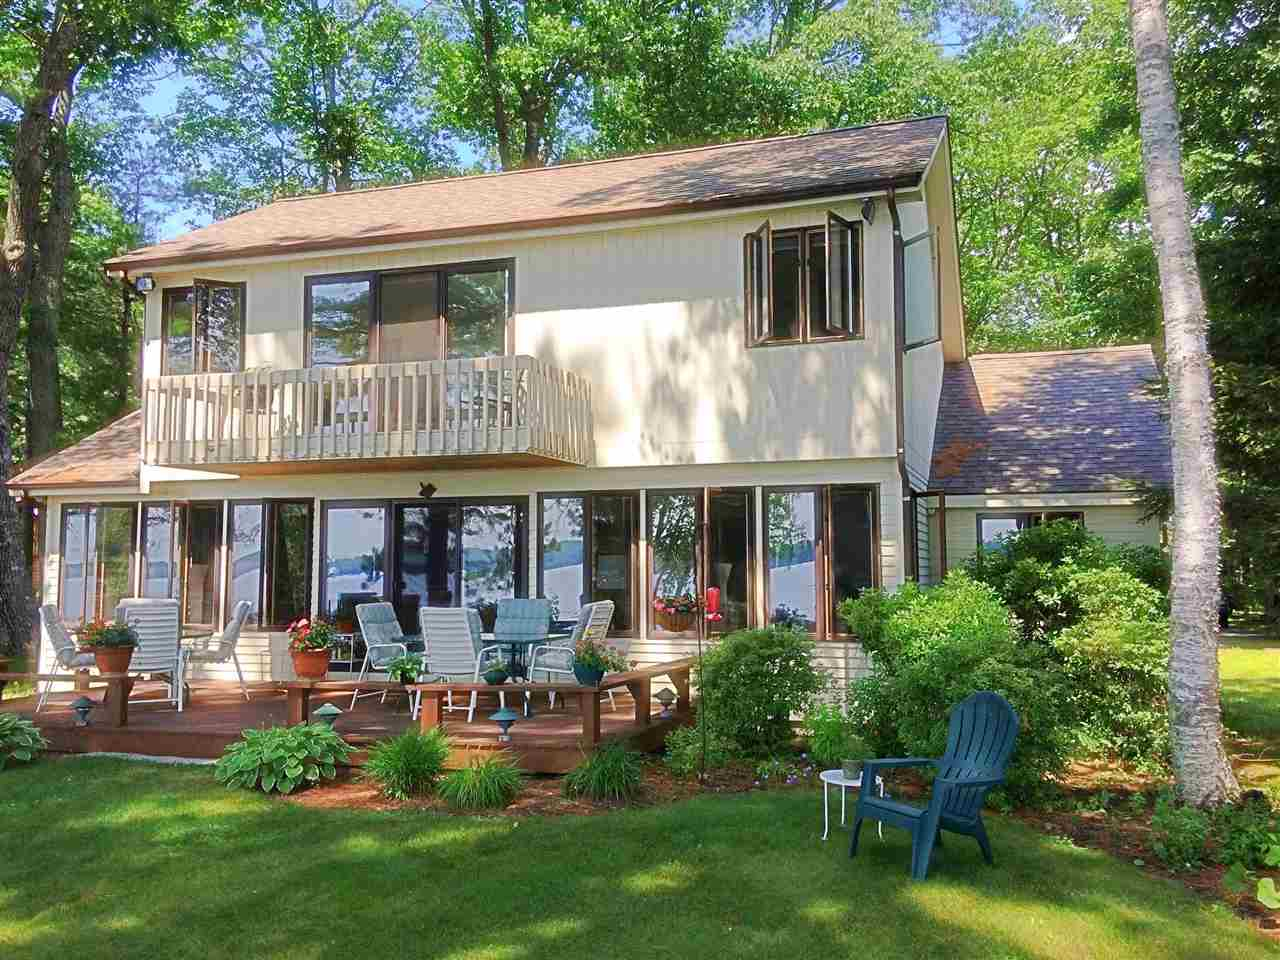 Tuftonboro NH Home mls no. 4648050 with 100 ft. owned waterfront